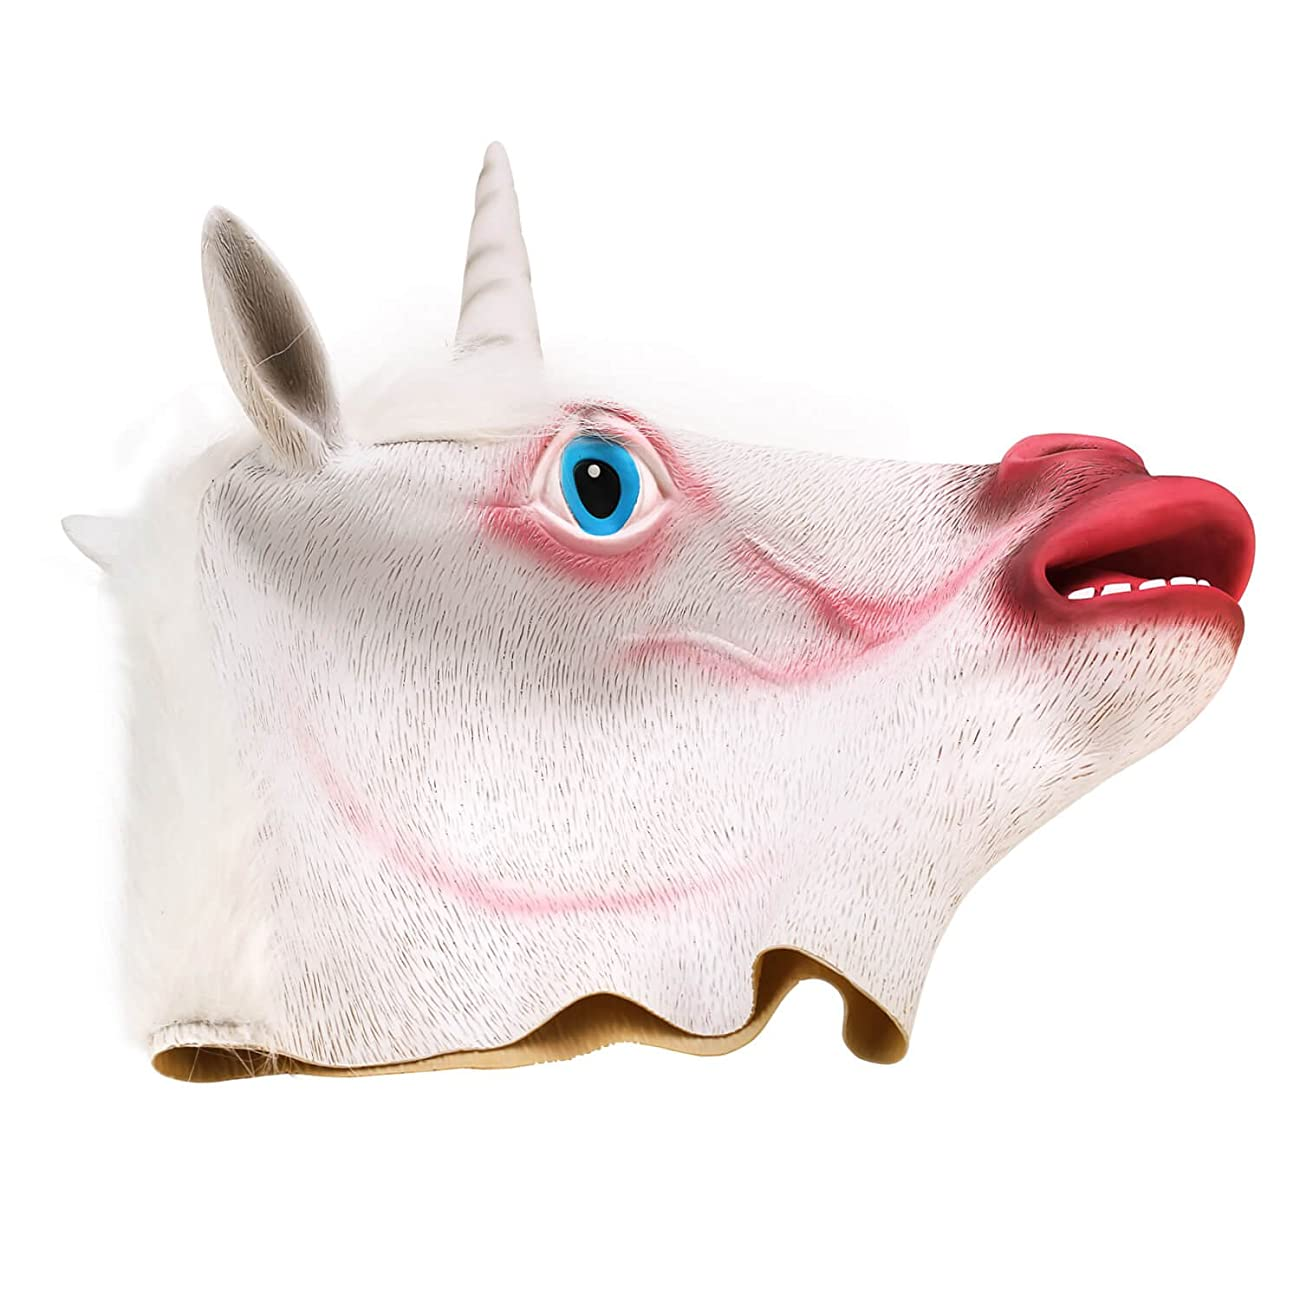 Ylovetoys Unicorn Head Mask Halloween Costume Party Novelty Latex Animal Mask 4